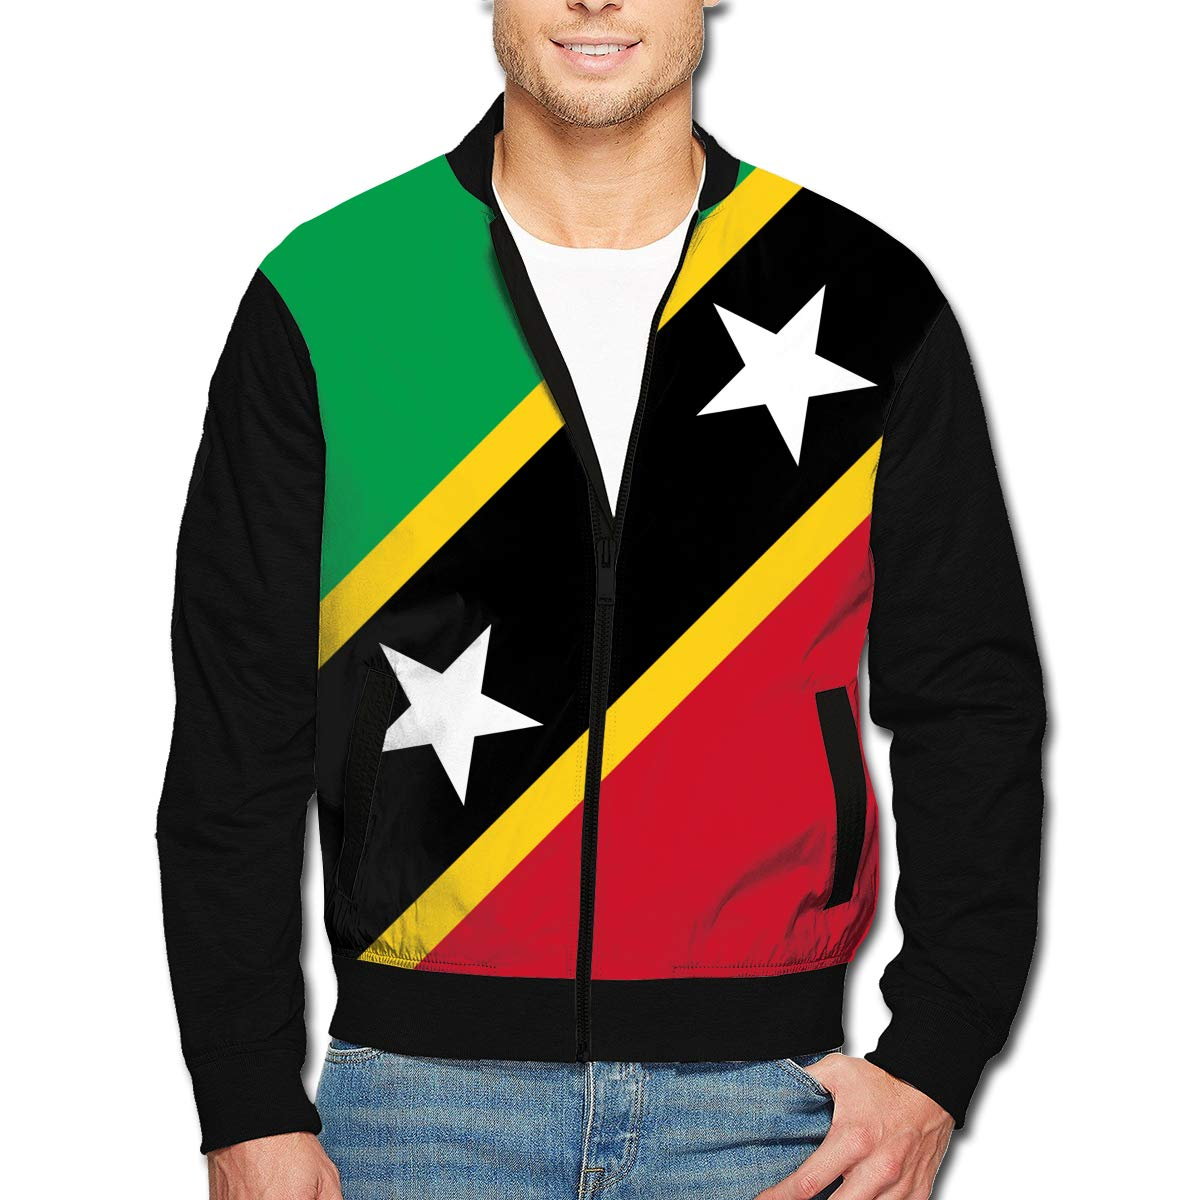 Saint Kitts and Nevis Flag Mens Bomber Jacket Casual Track Jacket Baseball Coat Stand-up Collar Jacket